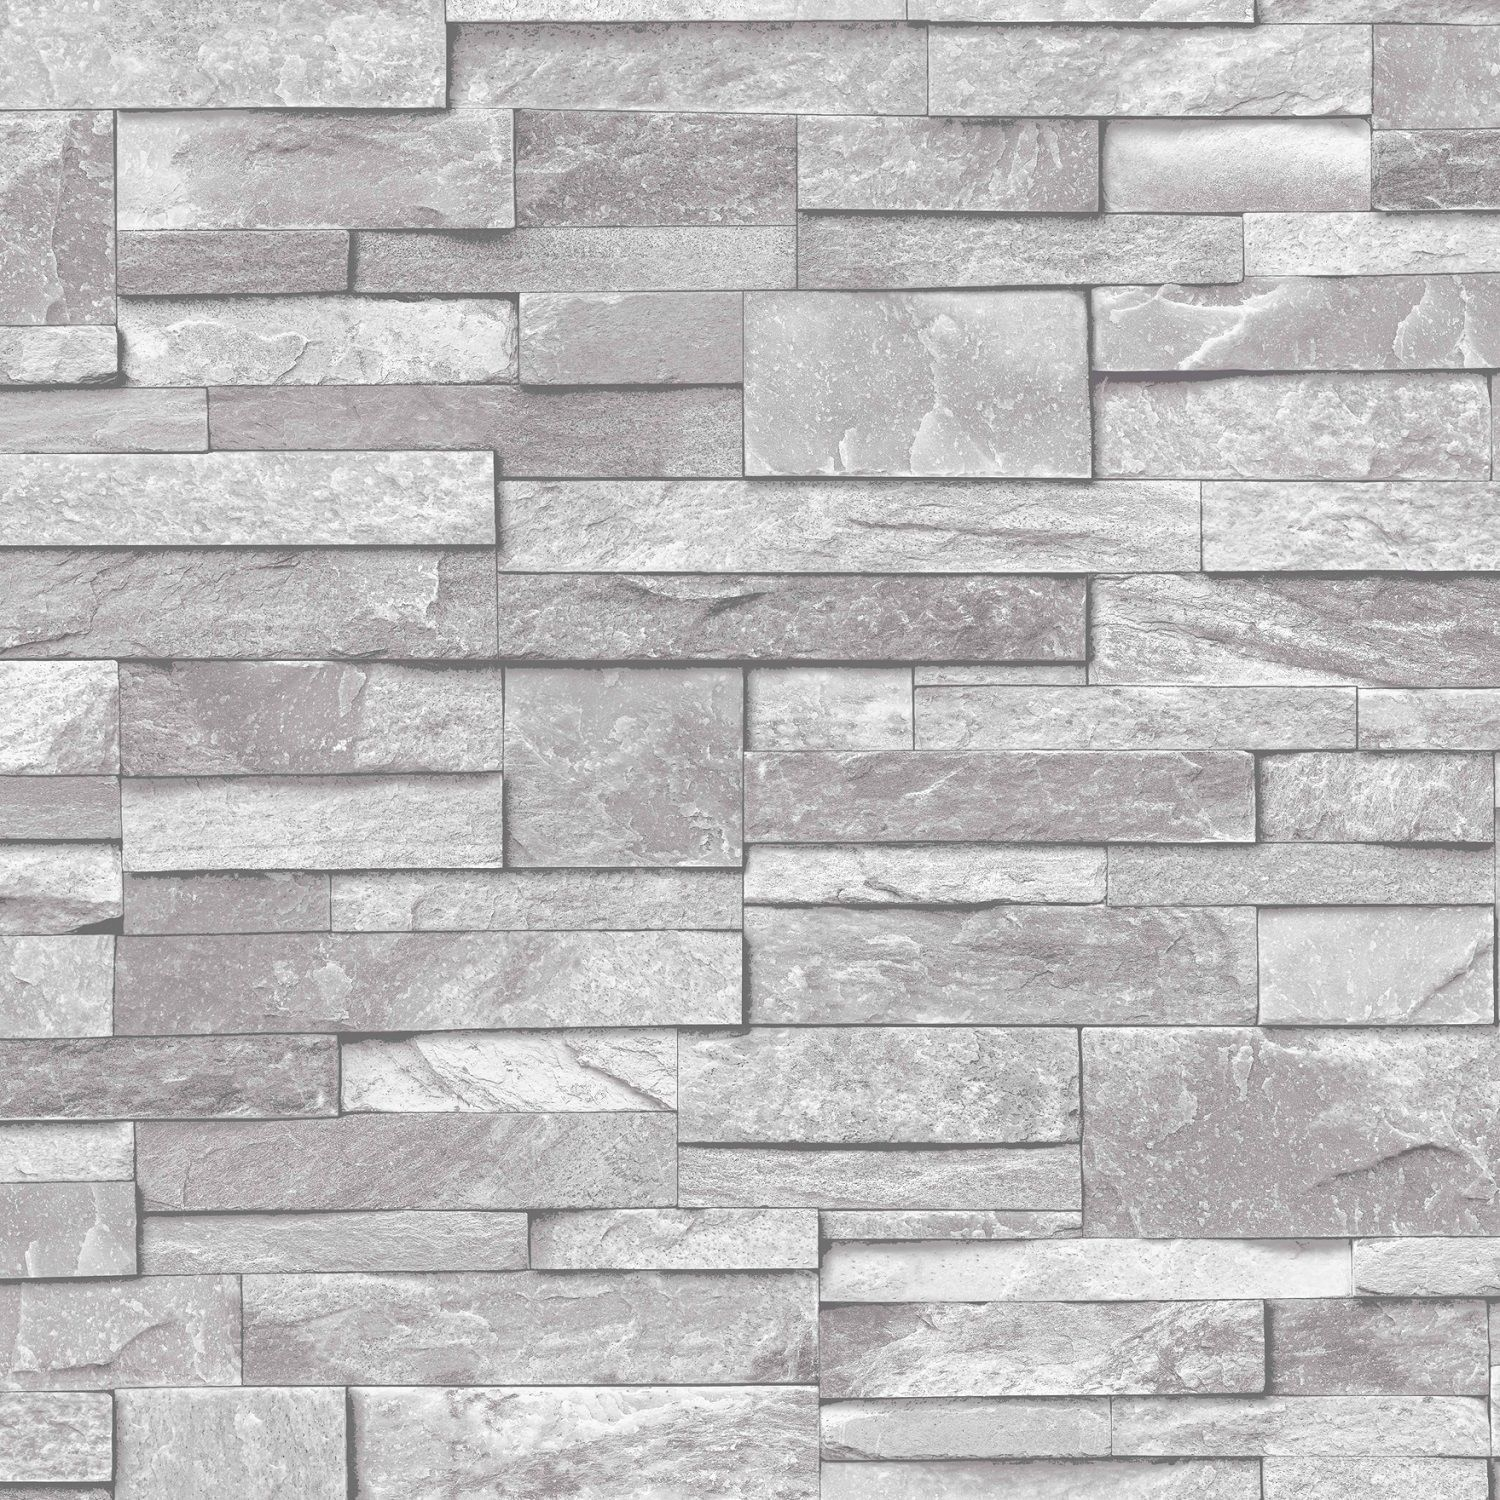 Brick Stone Accent Wall In Charcoal: Realistic Stone / Brick Wall Effect